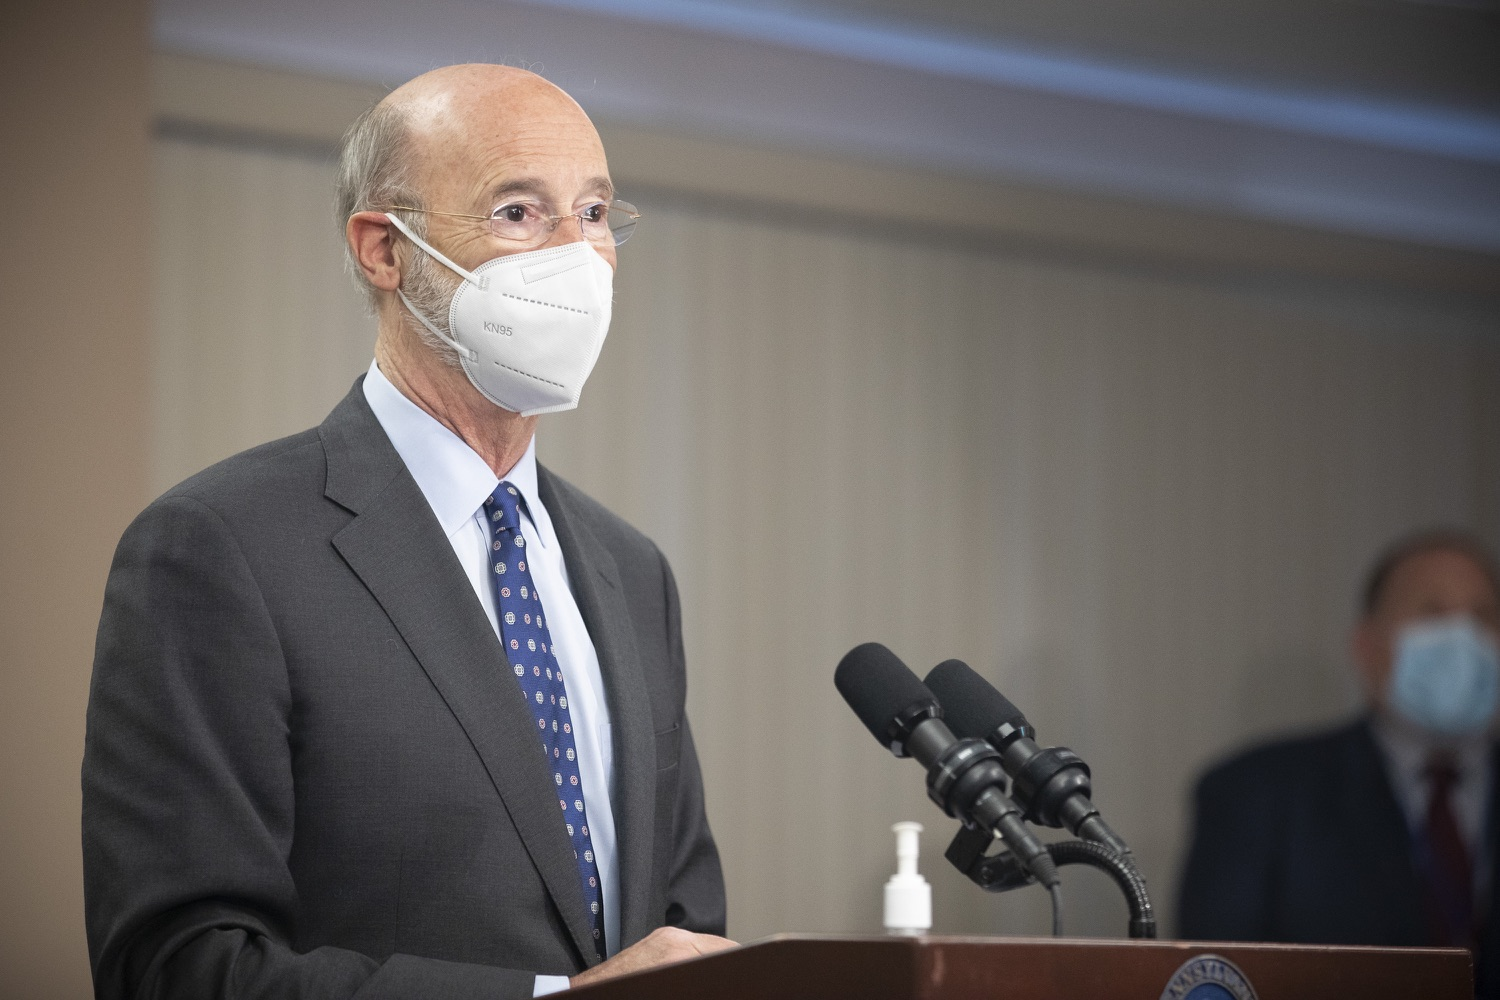 """<a href=""""https://filesource.wostreaming.net/commonwealthofpa/photo/18646_gov_vaccines_dz_011.jpg"""" target=""""_blank"""">⇣Download Photo<br></a>Pennsylvania Governor Tom Wolf speaking with the press.  After vaccinating more than 112,500 teachers and school staff in only about three weeks, Governor Tom Wolf visited Luzerne County today to announce the special vaccination initiative is a success and was completed ahead of schedule. The accomplishment is an important step to help more students and teachers safely return to classrooms across the state.  Kingston, PA - April 2, 2021"""